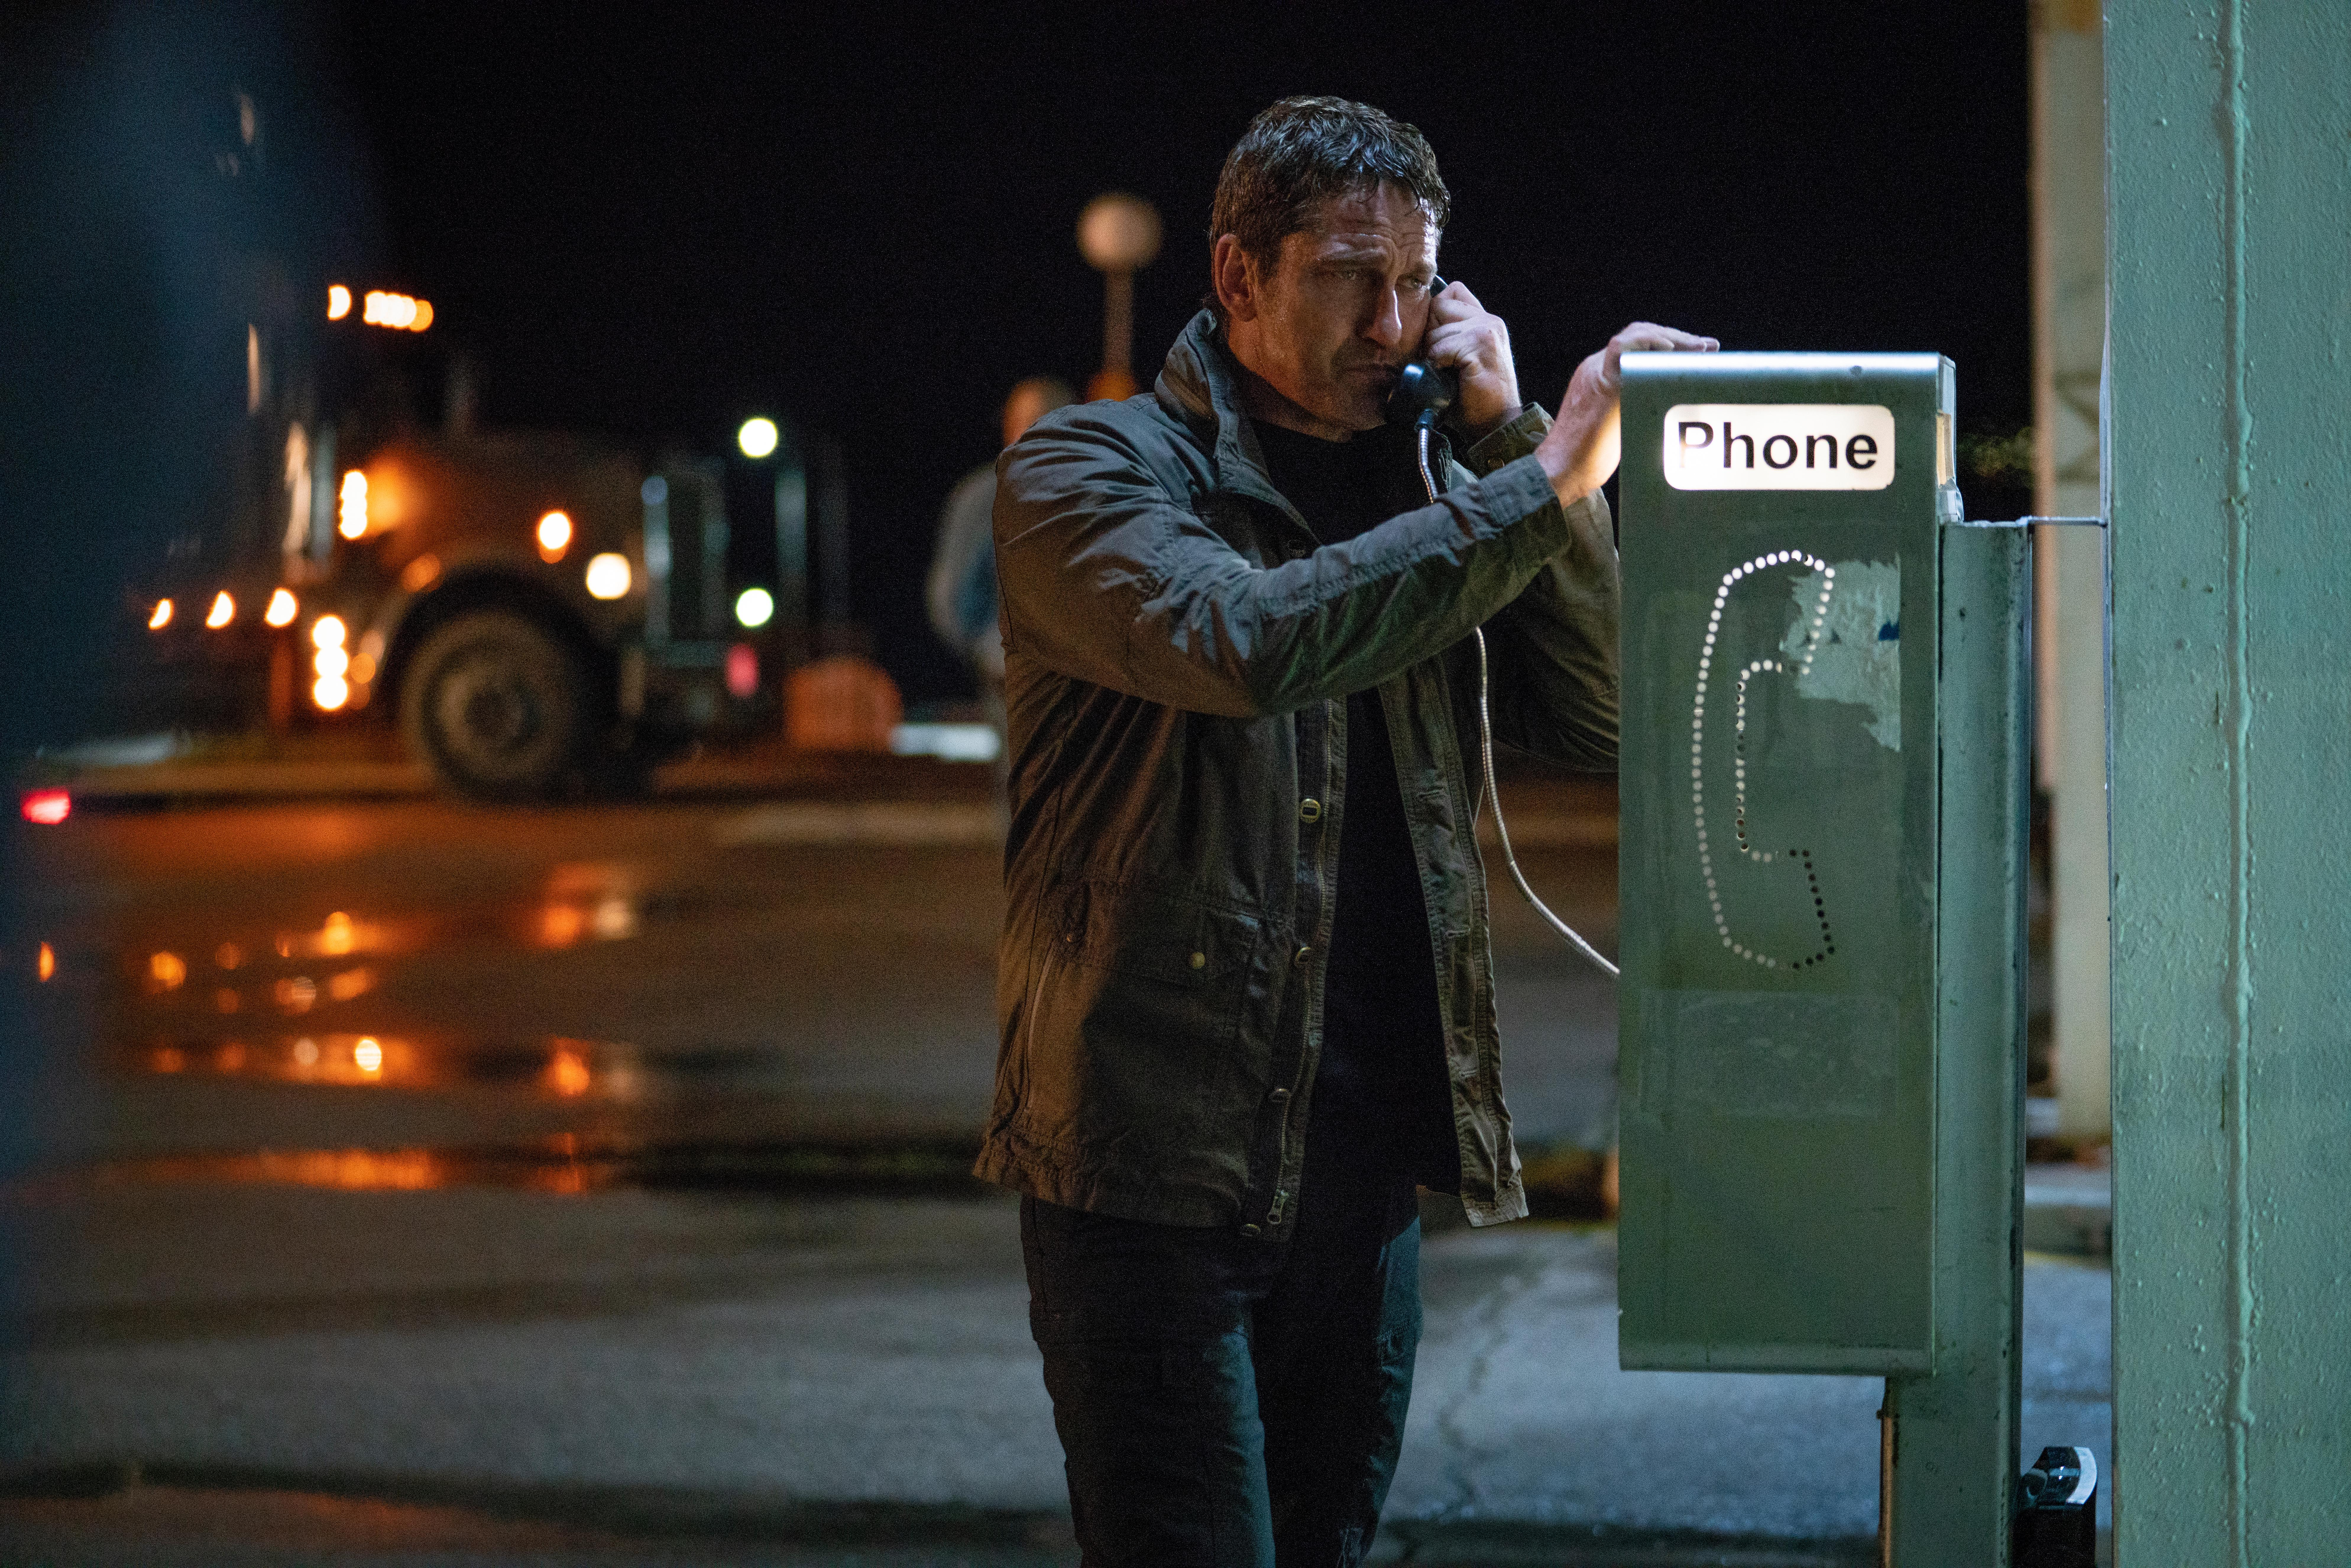 Gerard Butler stars as 'Mike Banning' in ANGEL HAS FALLEN.{ }(Image: Lionsgate)